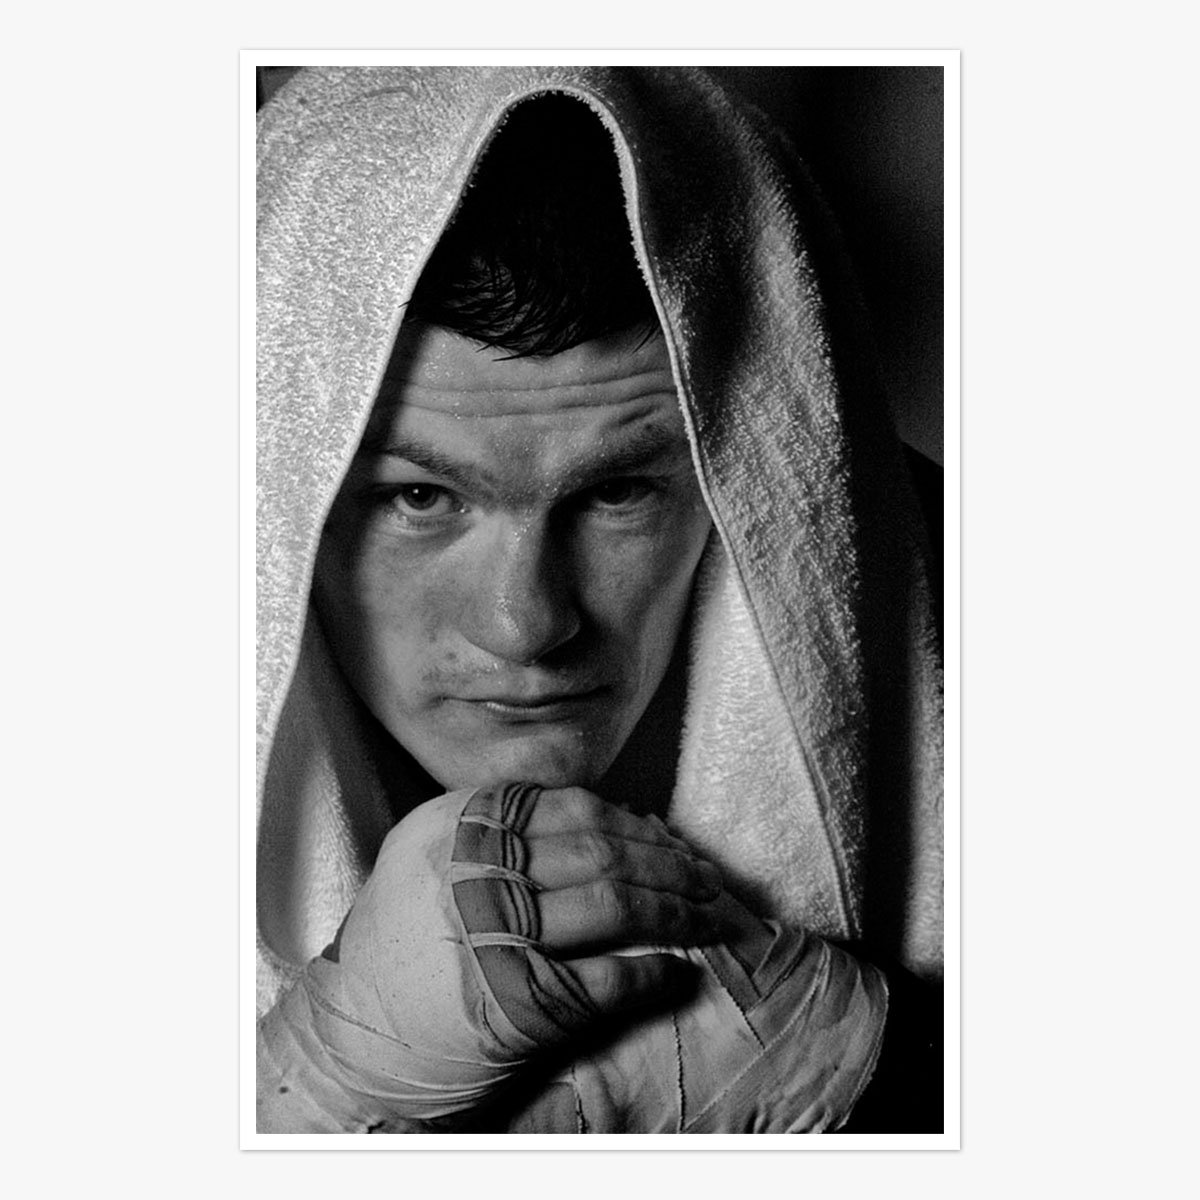 Ricky Hatton trains for Juan Luis Castillo by Michael Brennan